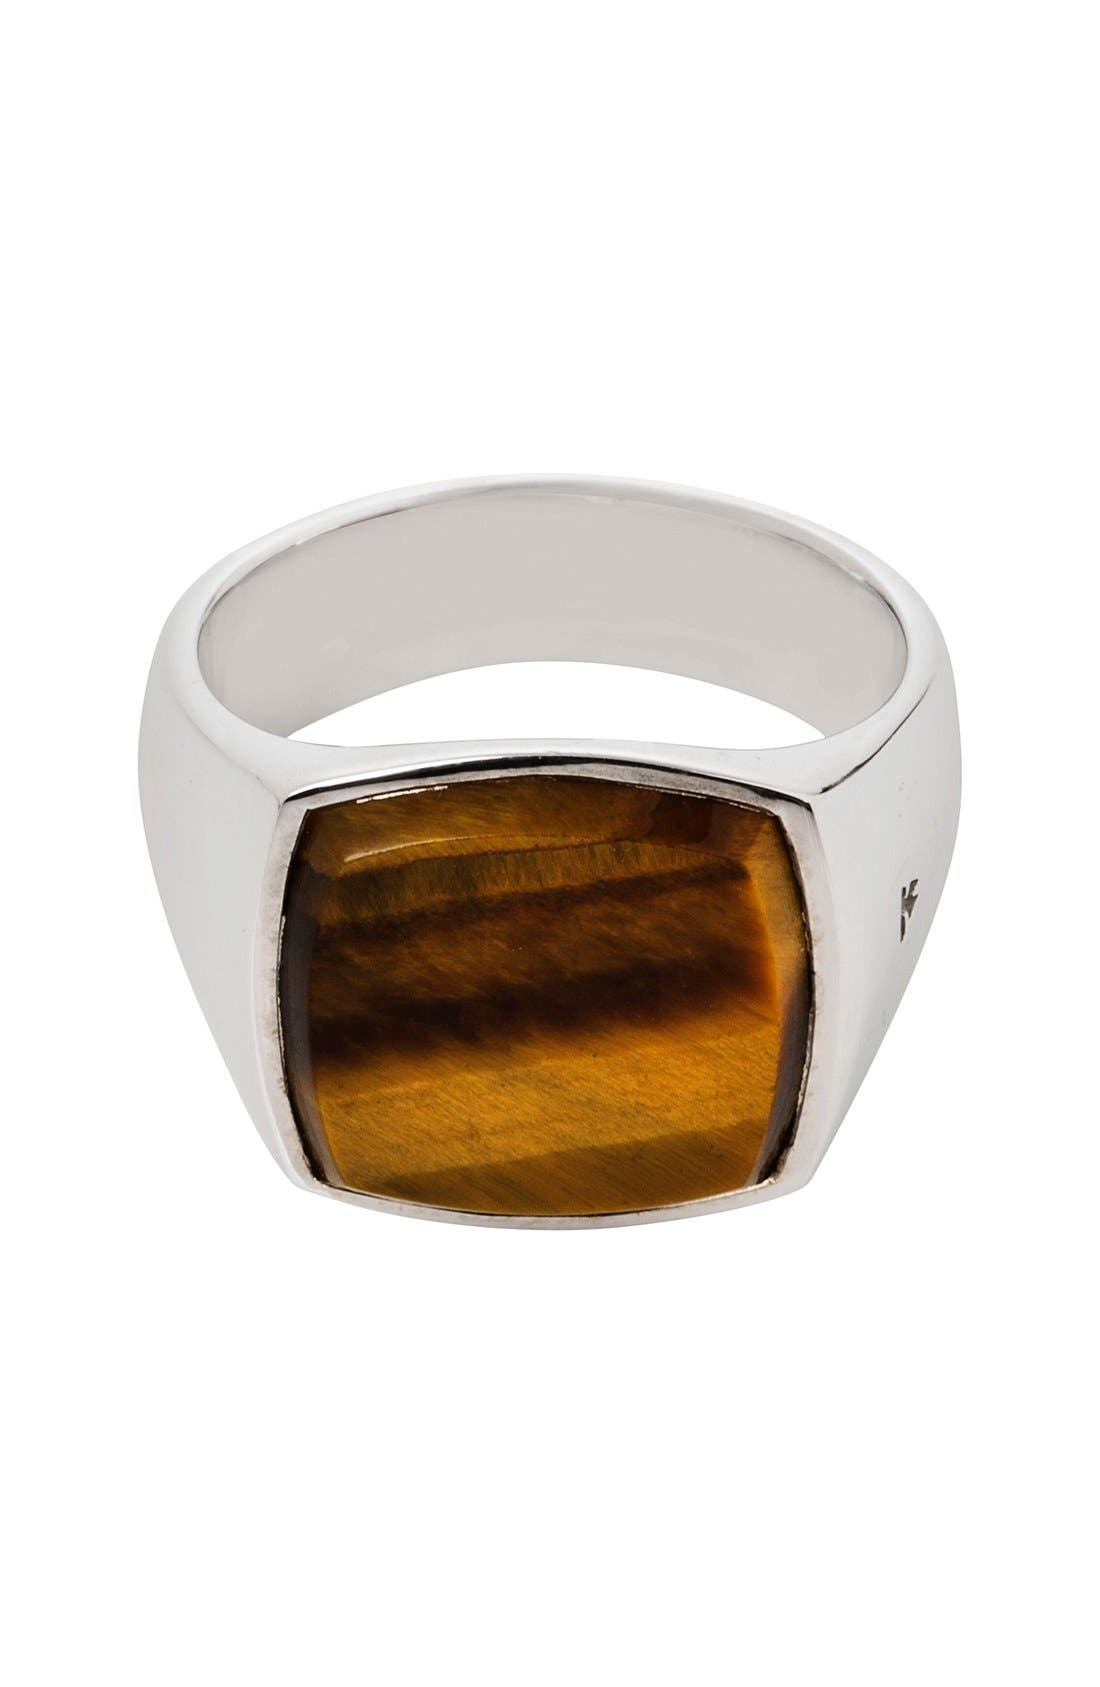 Cushion Tiger's Eye Signet Ring,                             Main thumbnail 1, color,                             040